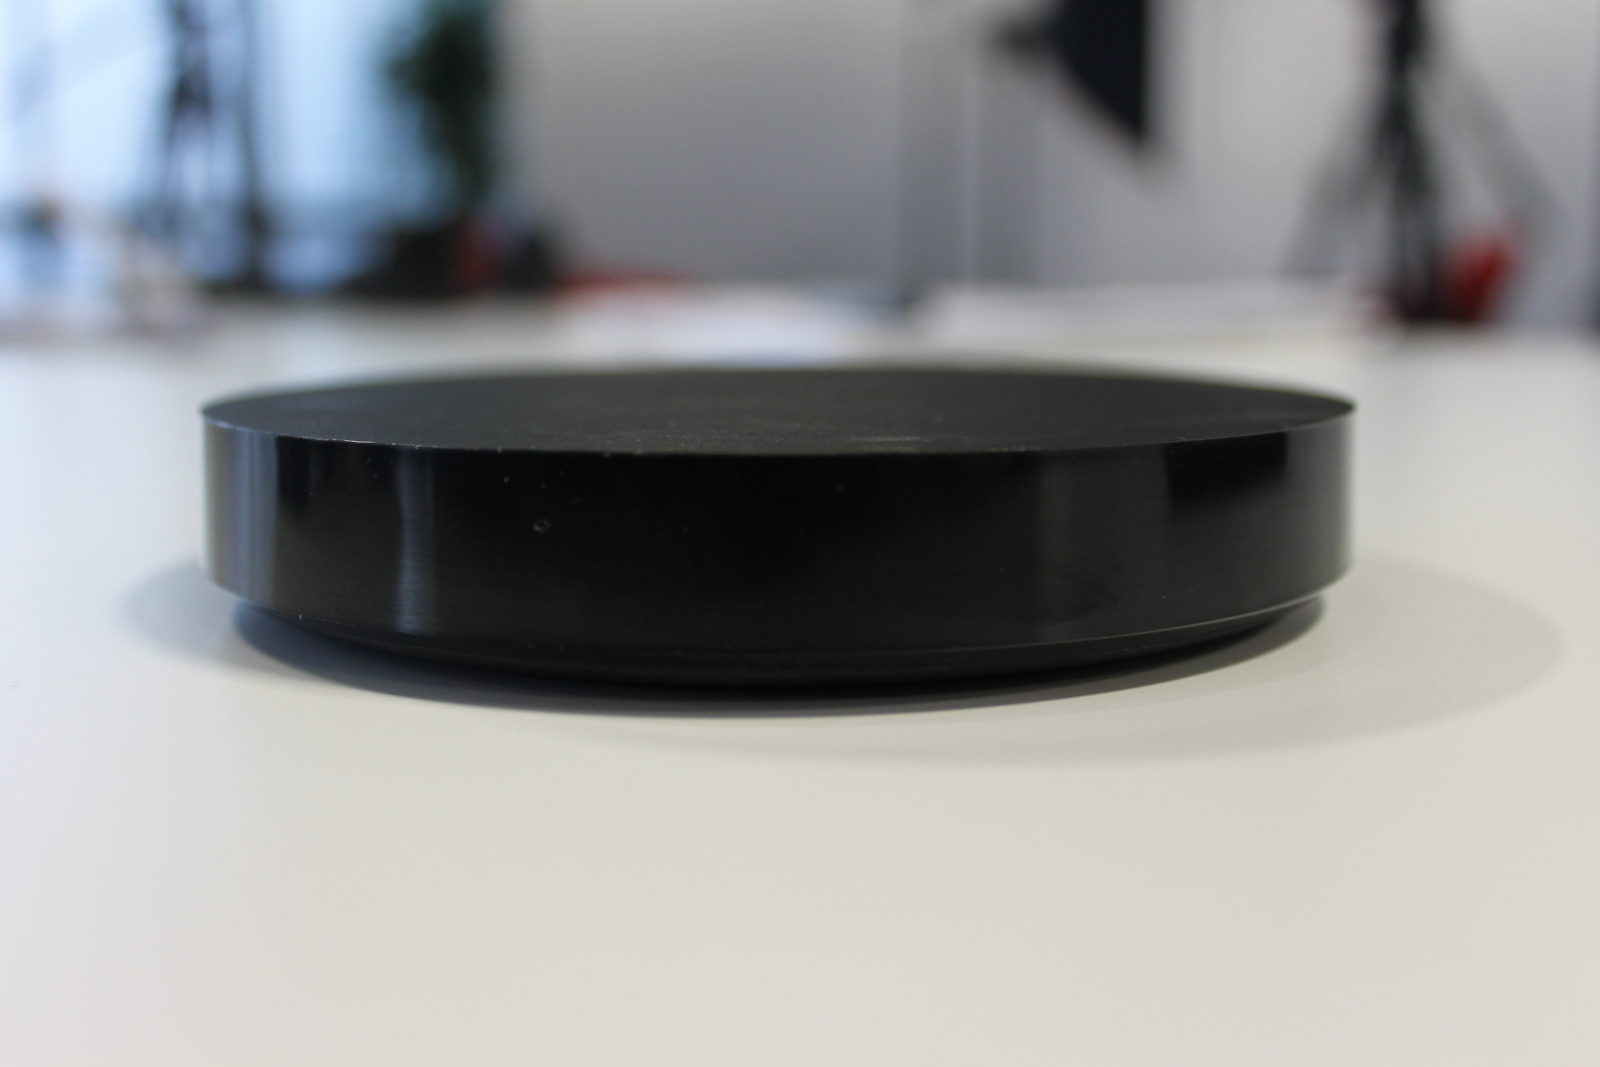 Google Nexus Player Review